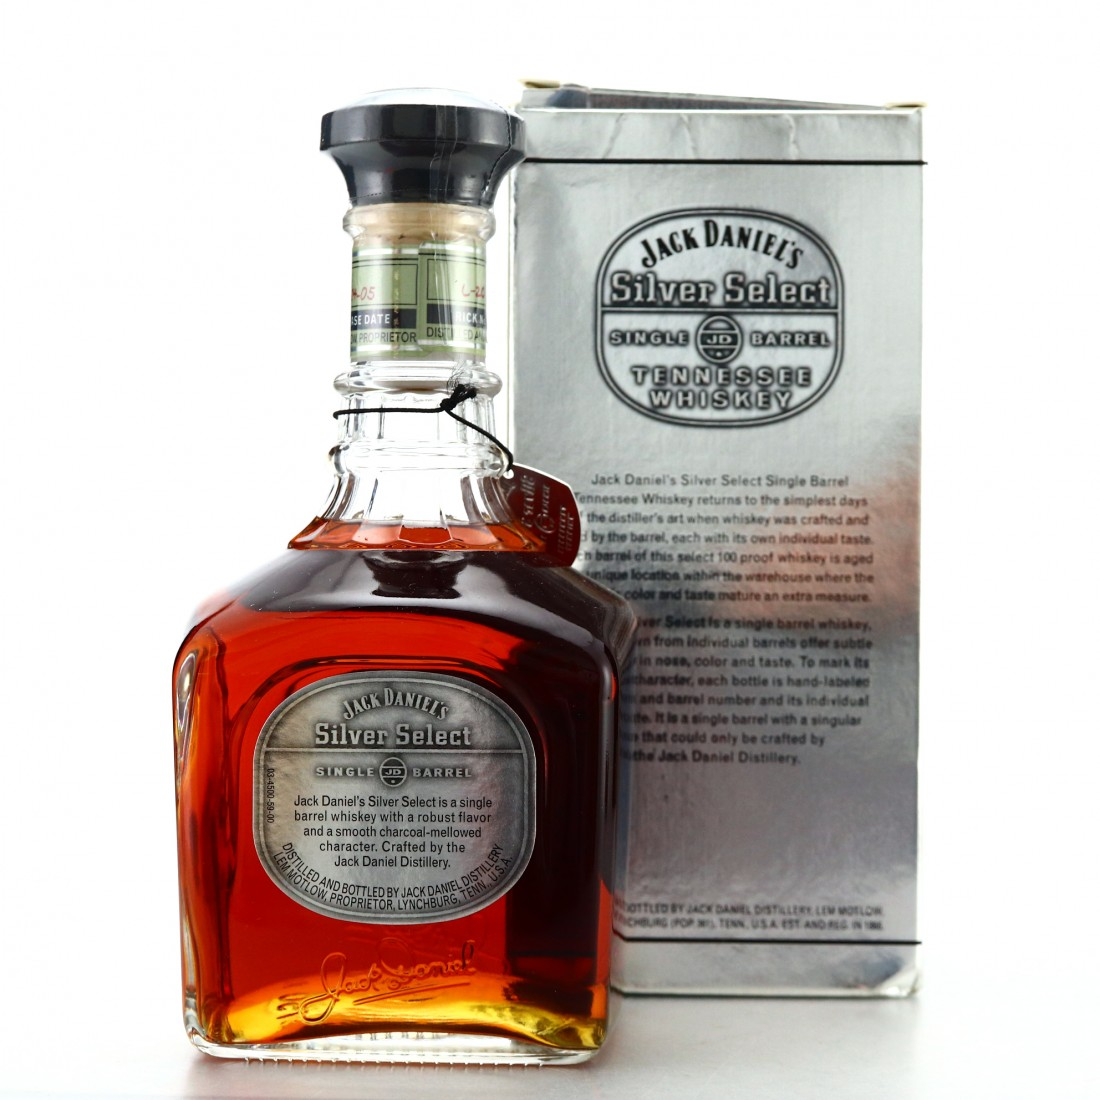 Jack Daniel's Silver Select Single Barrel